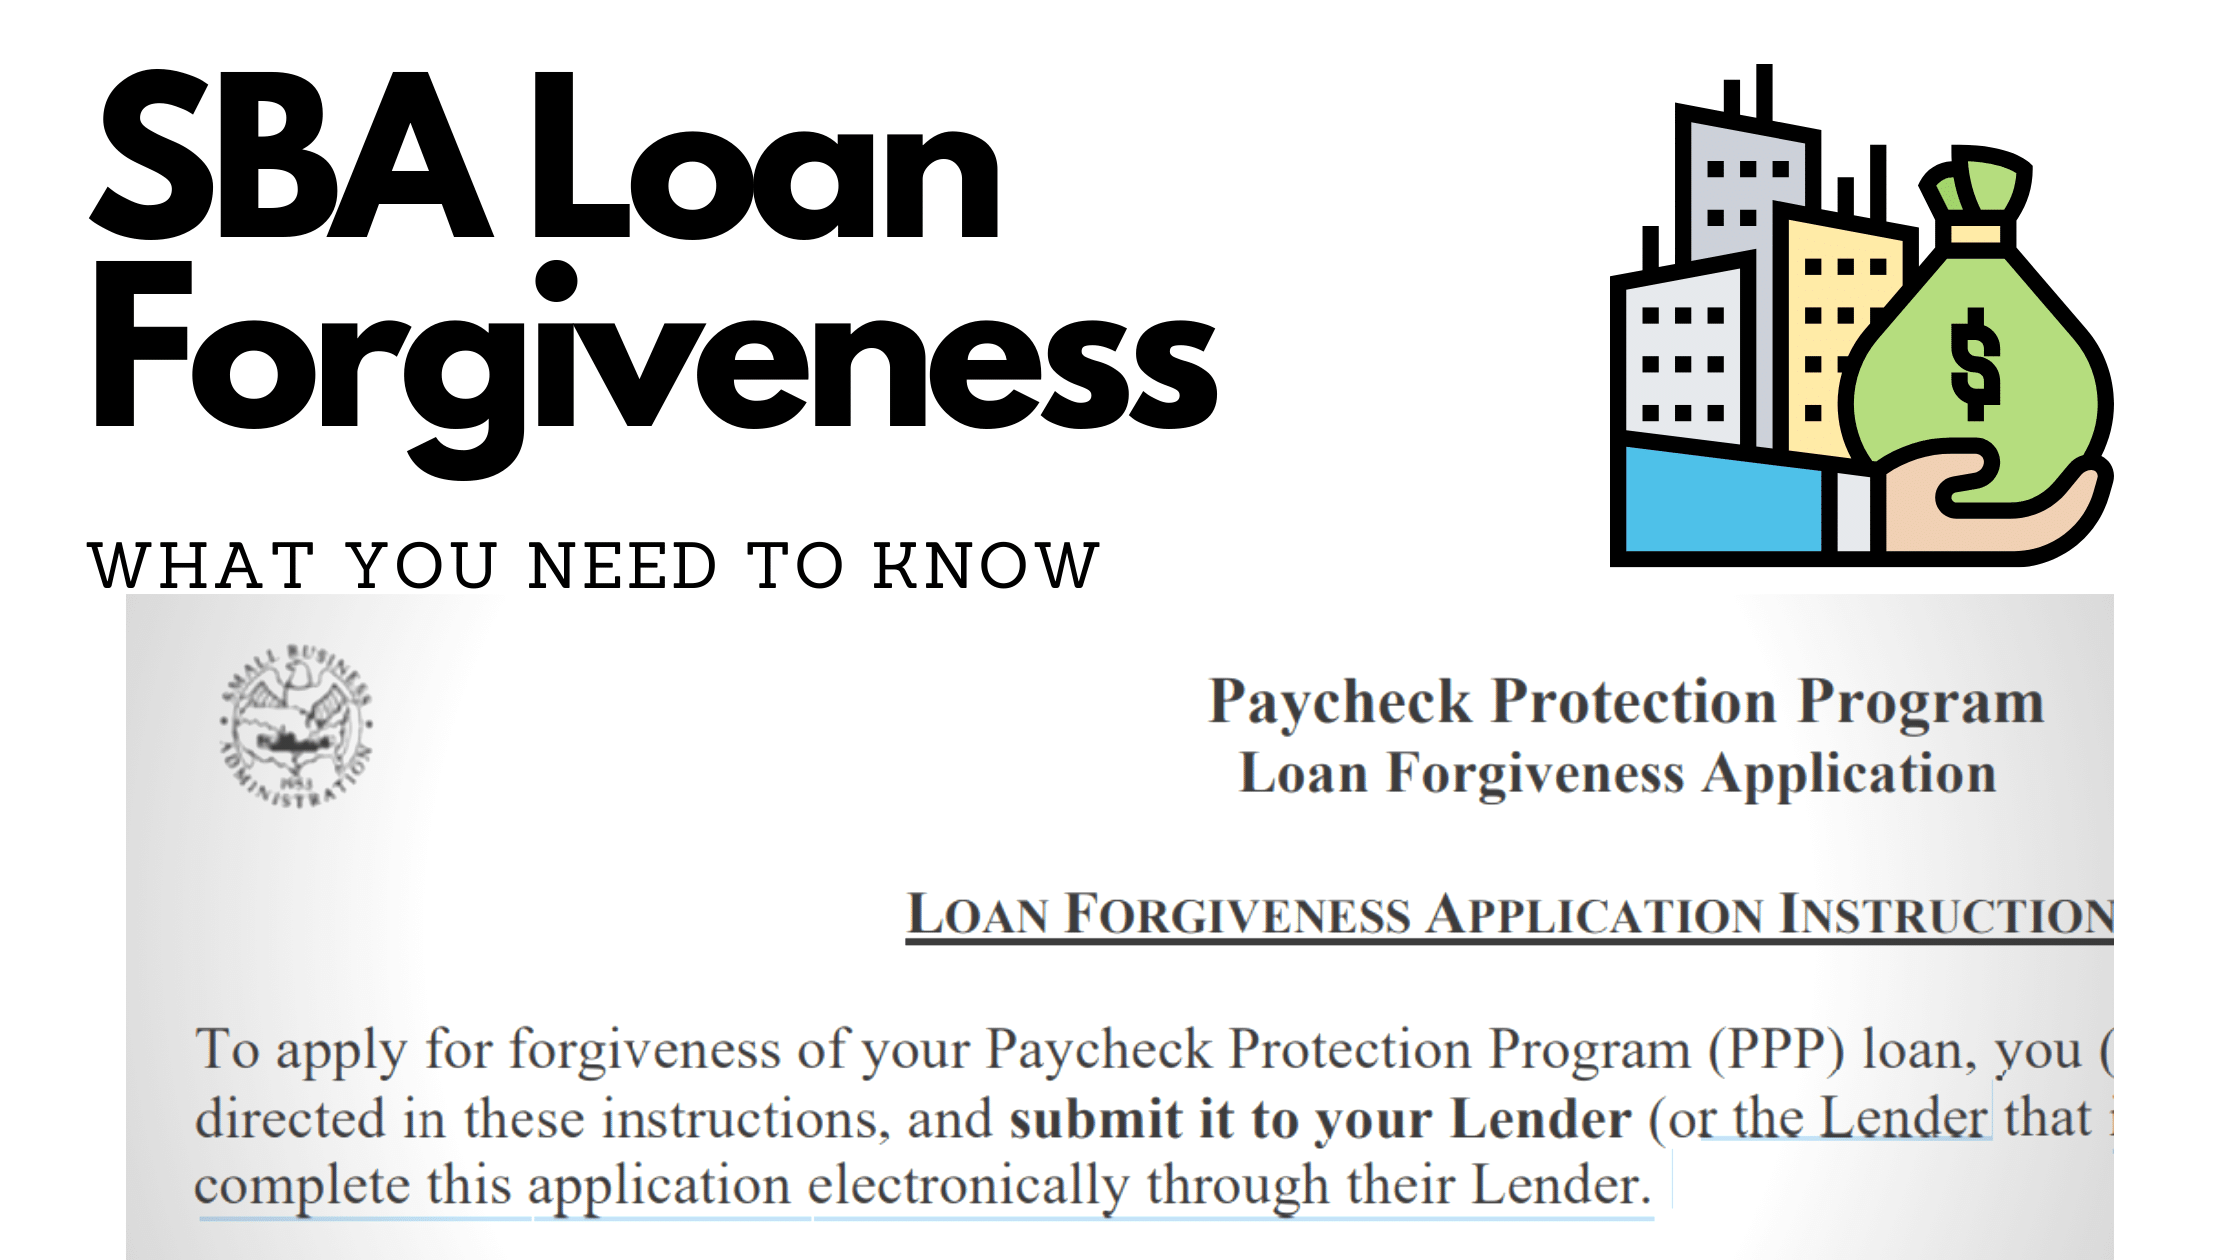 SBA Loan Forgiveness